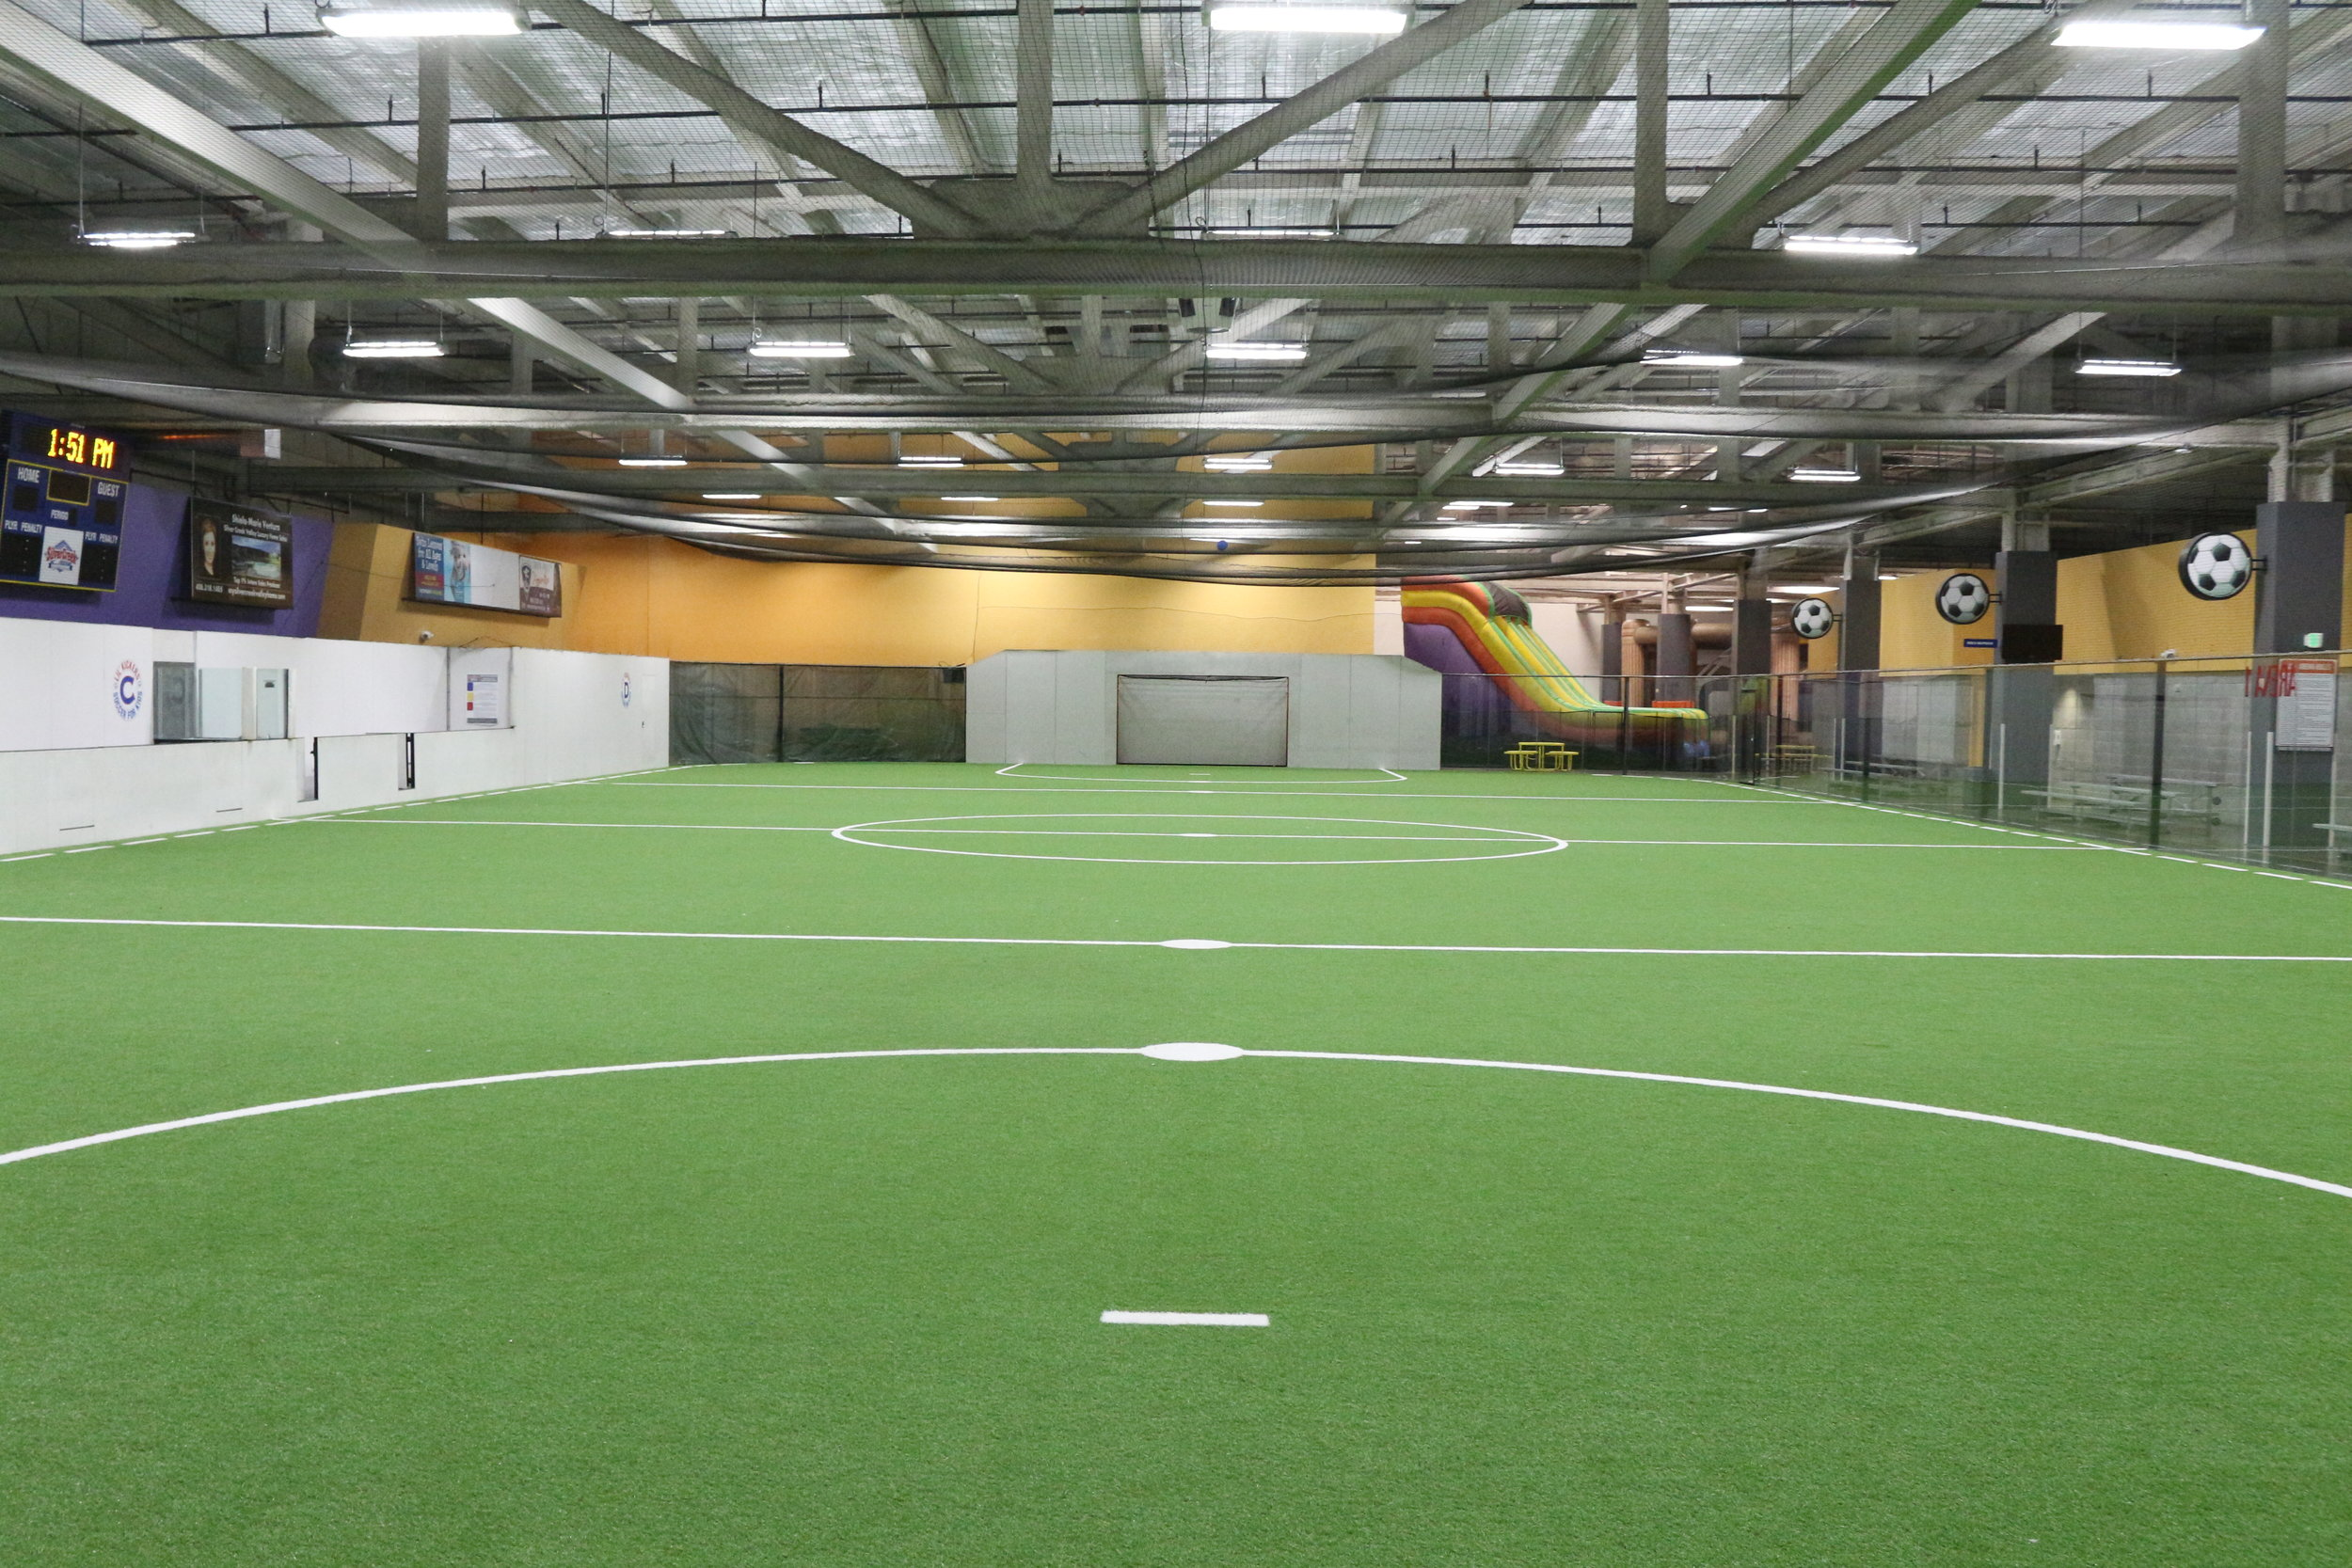 Book a Facility - Browse through local gyms, fields, courts, studios, and other athletic spaces available to rent .